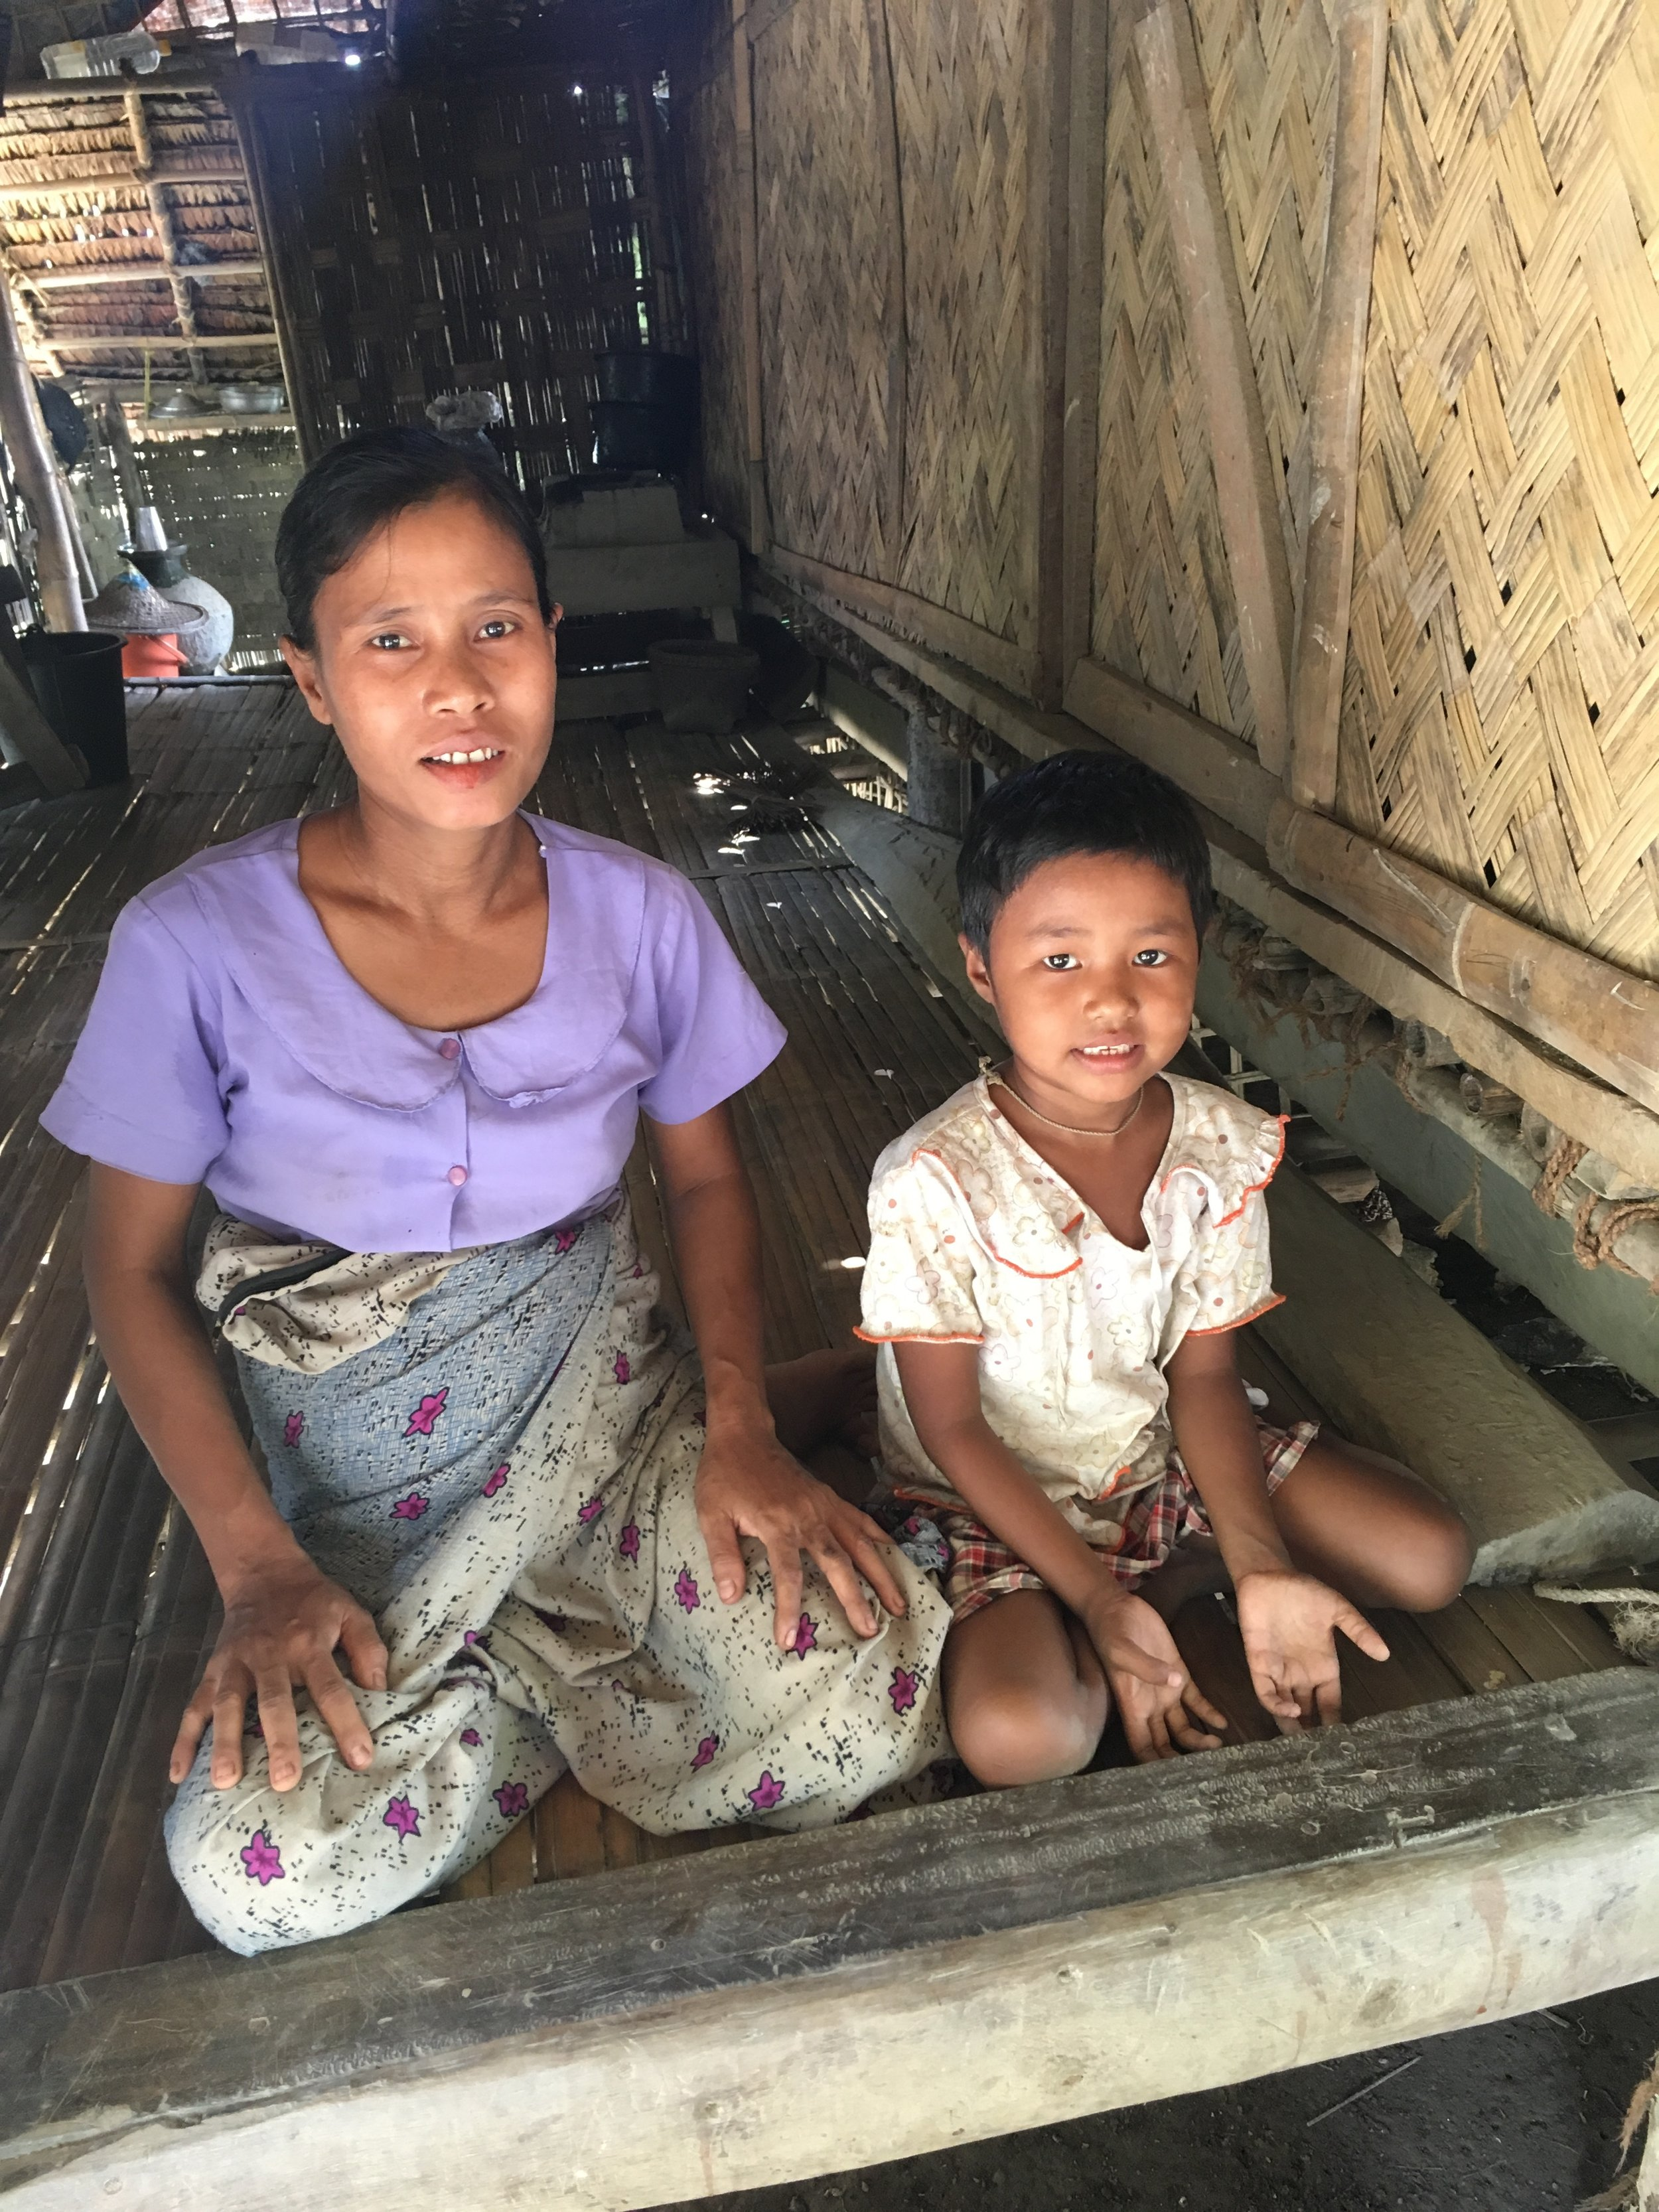 """We are casual workers, and after the floods, there is less work for us."" In a remote village in the Mimbya Township of Rakhine State, the 2015 floods swept away Zaw's* family's small bamboo house, their few belongings, and all of their animals (six chickens and a pig). Since the 2015 floods damaged nearby paddy fields, Zaw and her husband, both casual workers, now face increased competition for whatever work opportunities are available, and their daily wages are half of what they were before the floods. Five months pregnant and the mother of two, Zaw sits with her youngest daughter (pictured) in their reconstructed basic bamboo shelter and explains that, due to the family's now much-reduced weekly income, Zaw is no longer able to afford the fee to send her youngest child, Yu* (pictured), to school."